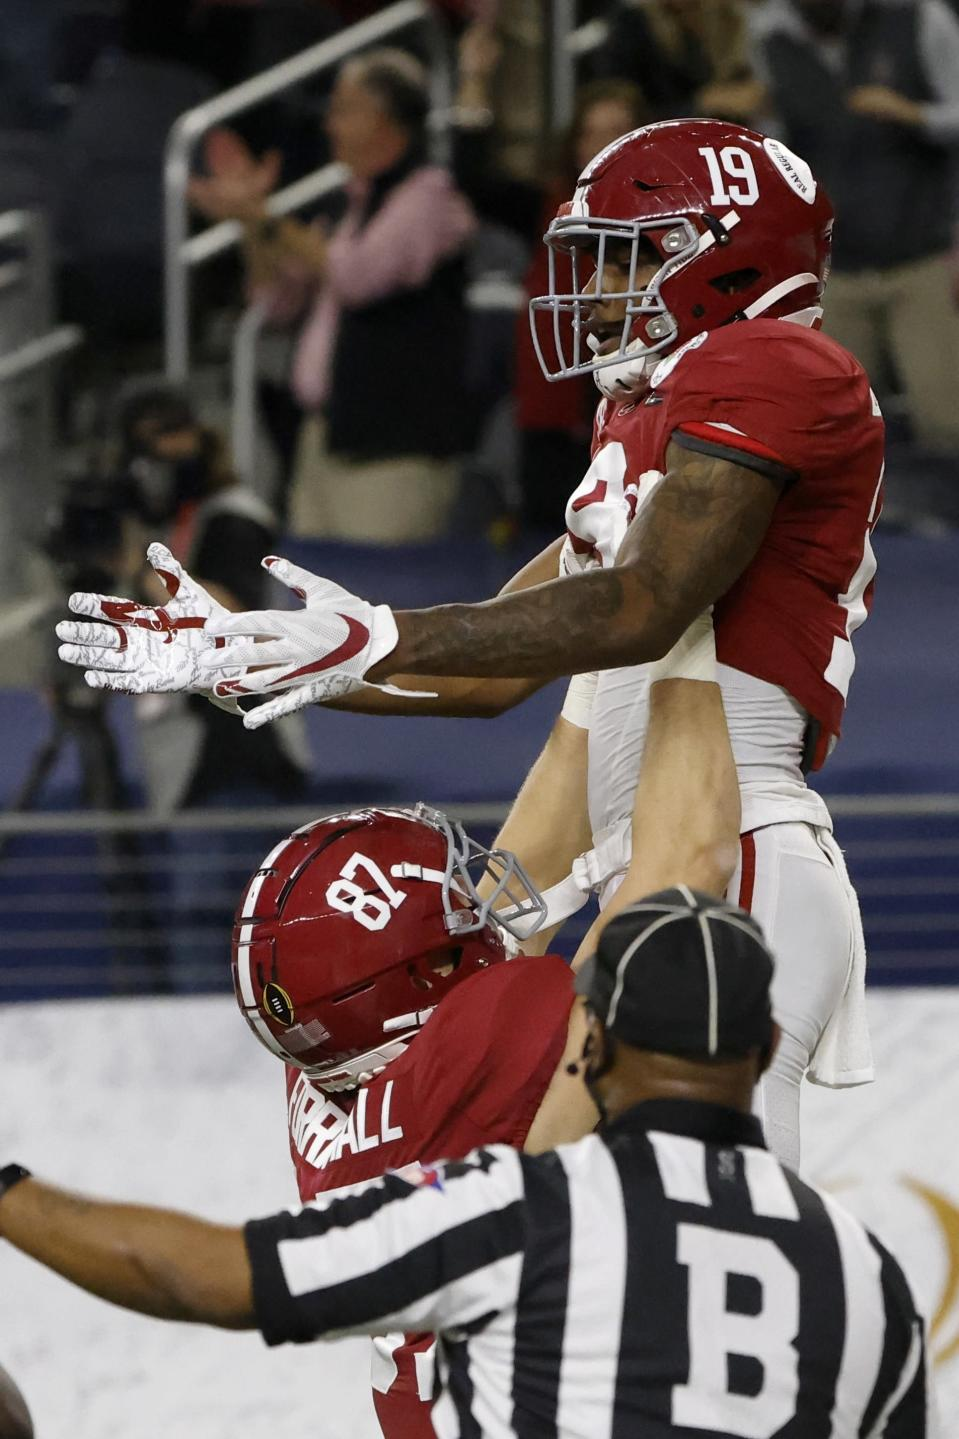 Alabama tight end Miller Forristall (87) and tight end Jahleel Billingsley (19) celebrate Billingsley's touchdown catch in the first half of the Rose Bowl NCAA college football game against Notre Dame in Arlington, Texas, Friday, Jan. 1, 2021. (AP Photo/Michael Ainsworth)